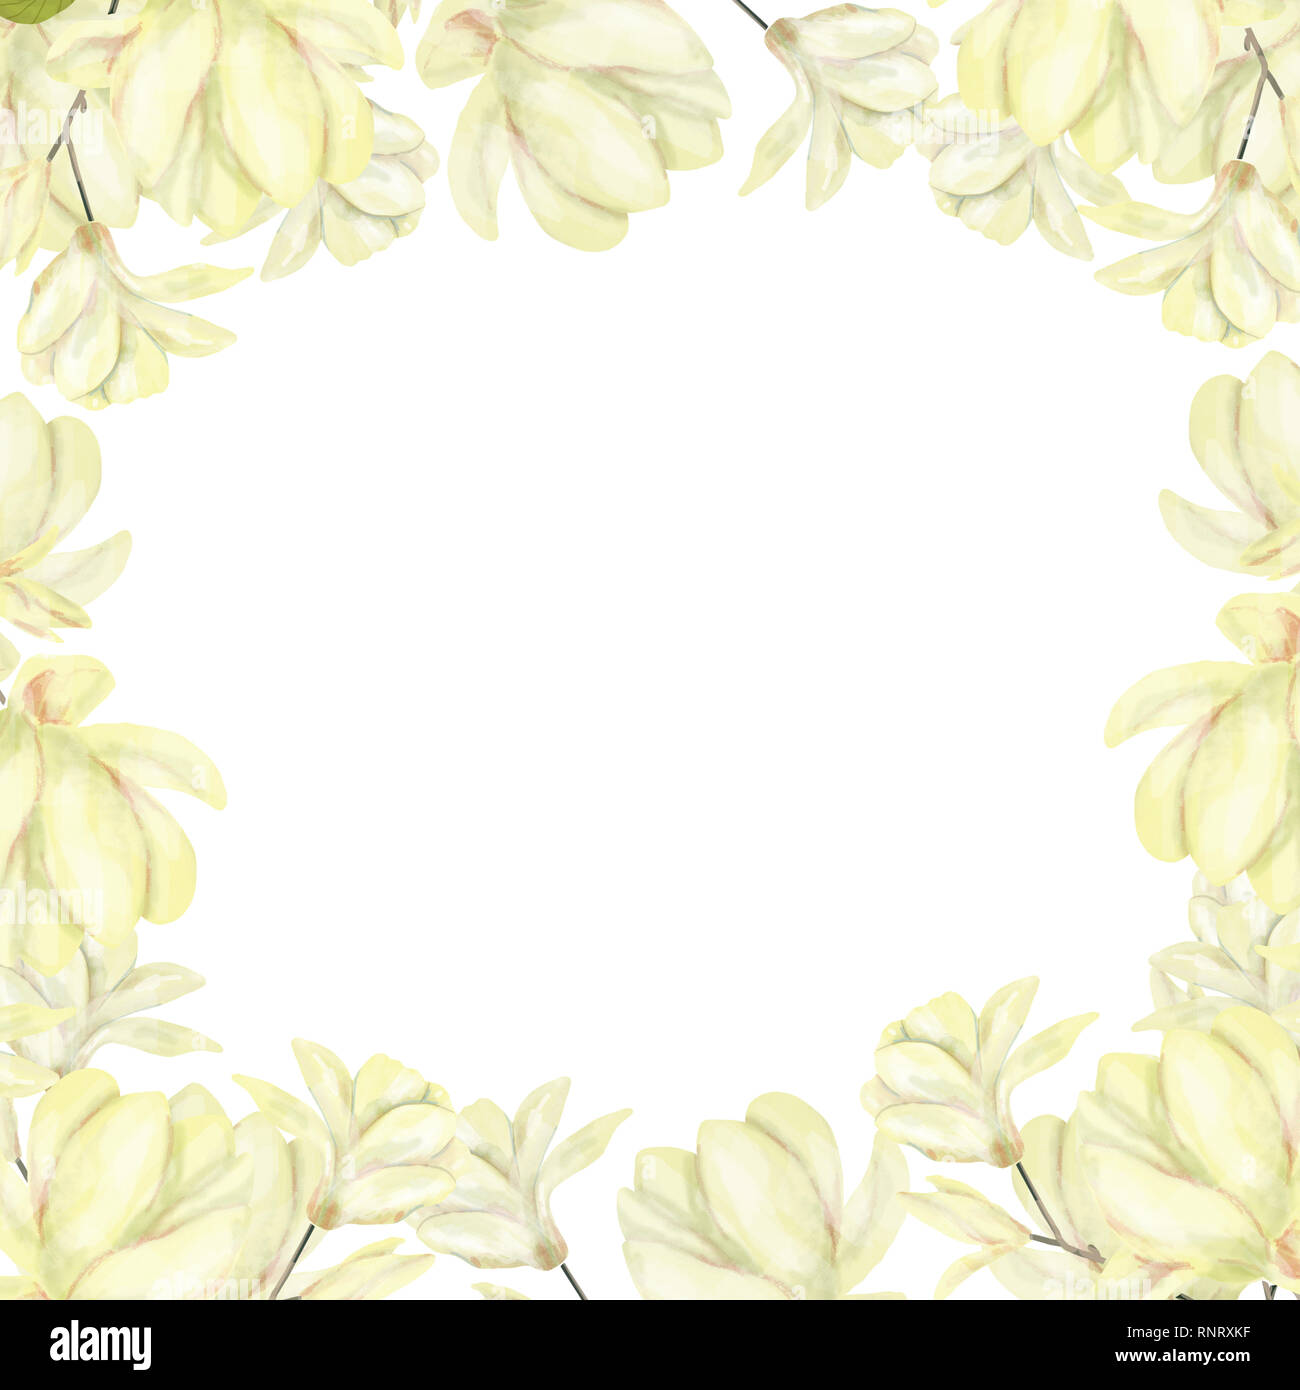 Wedding Invitation, floral invite card, olive floral and magnolia geometric golden frame print. White background - Stock Image